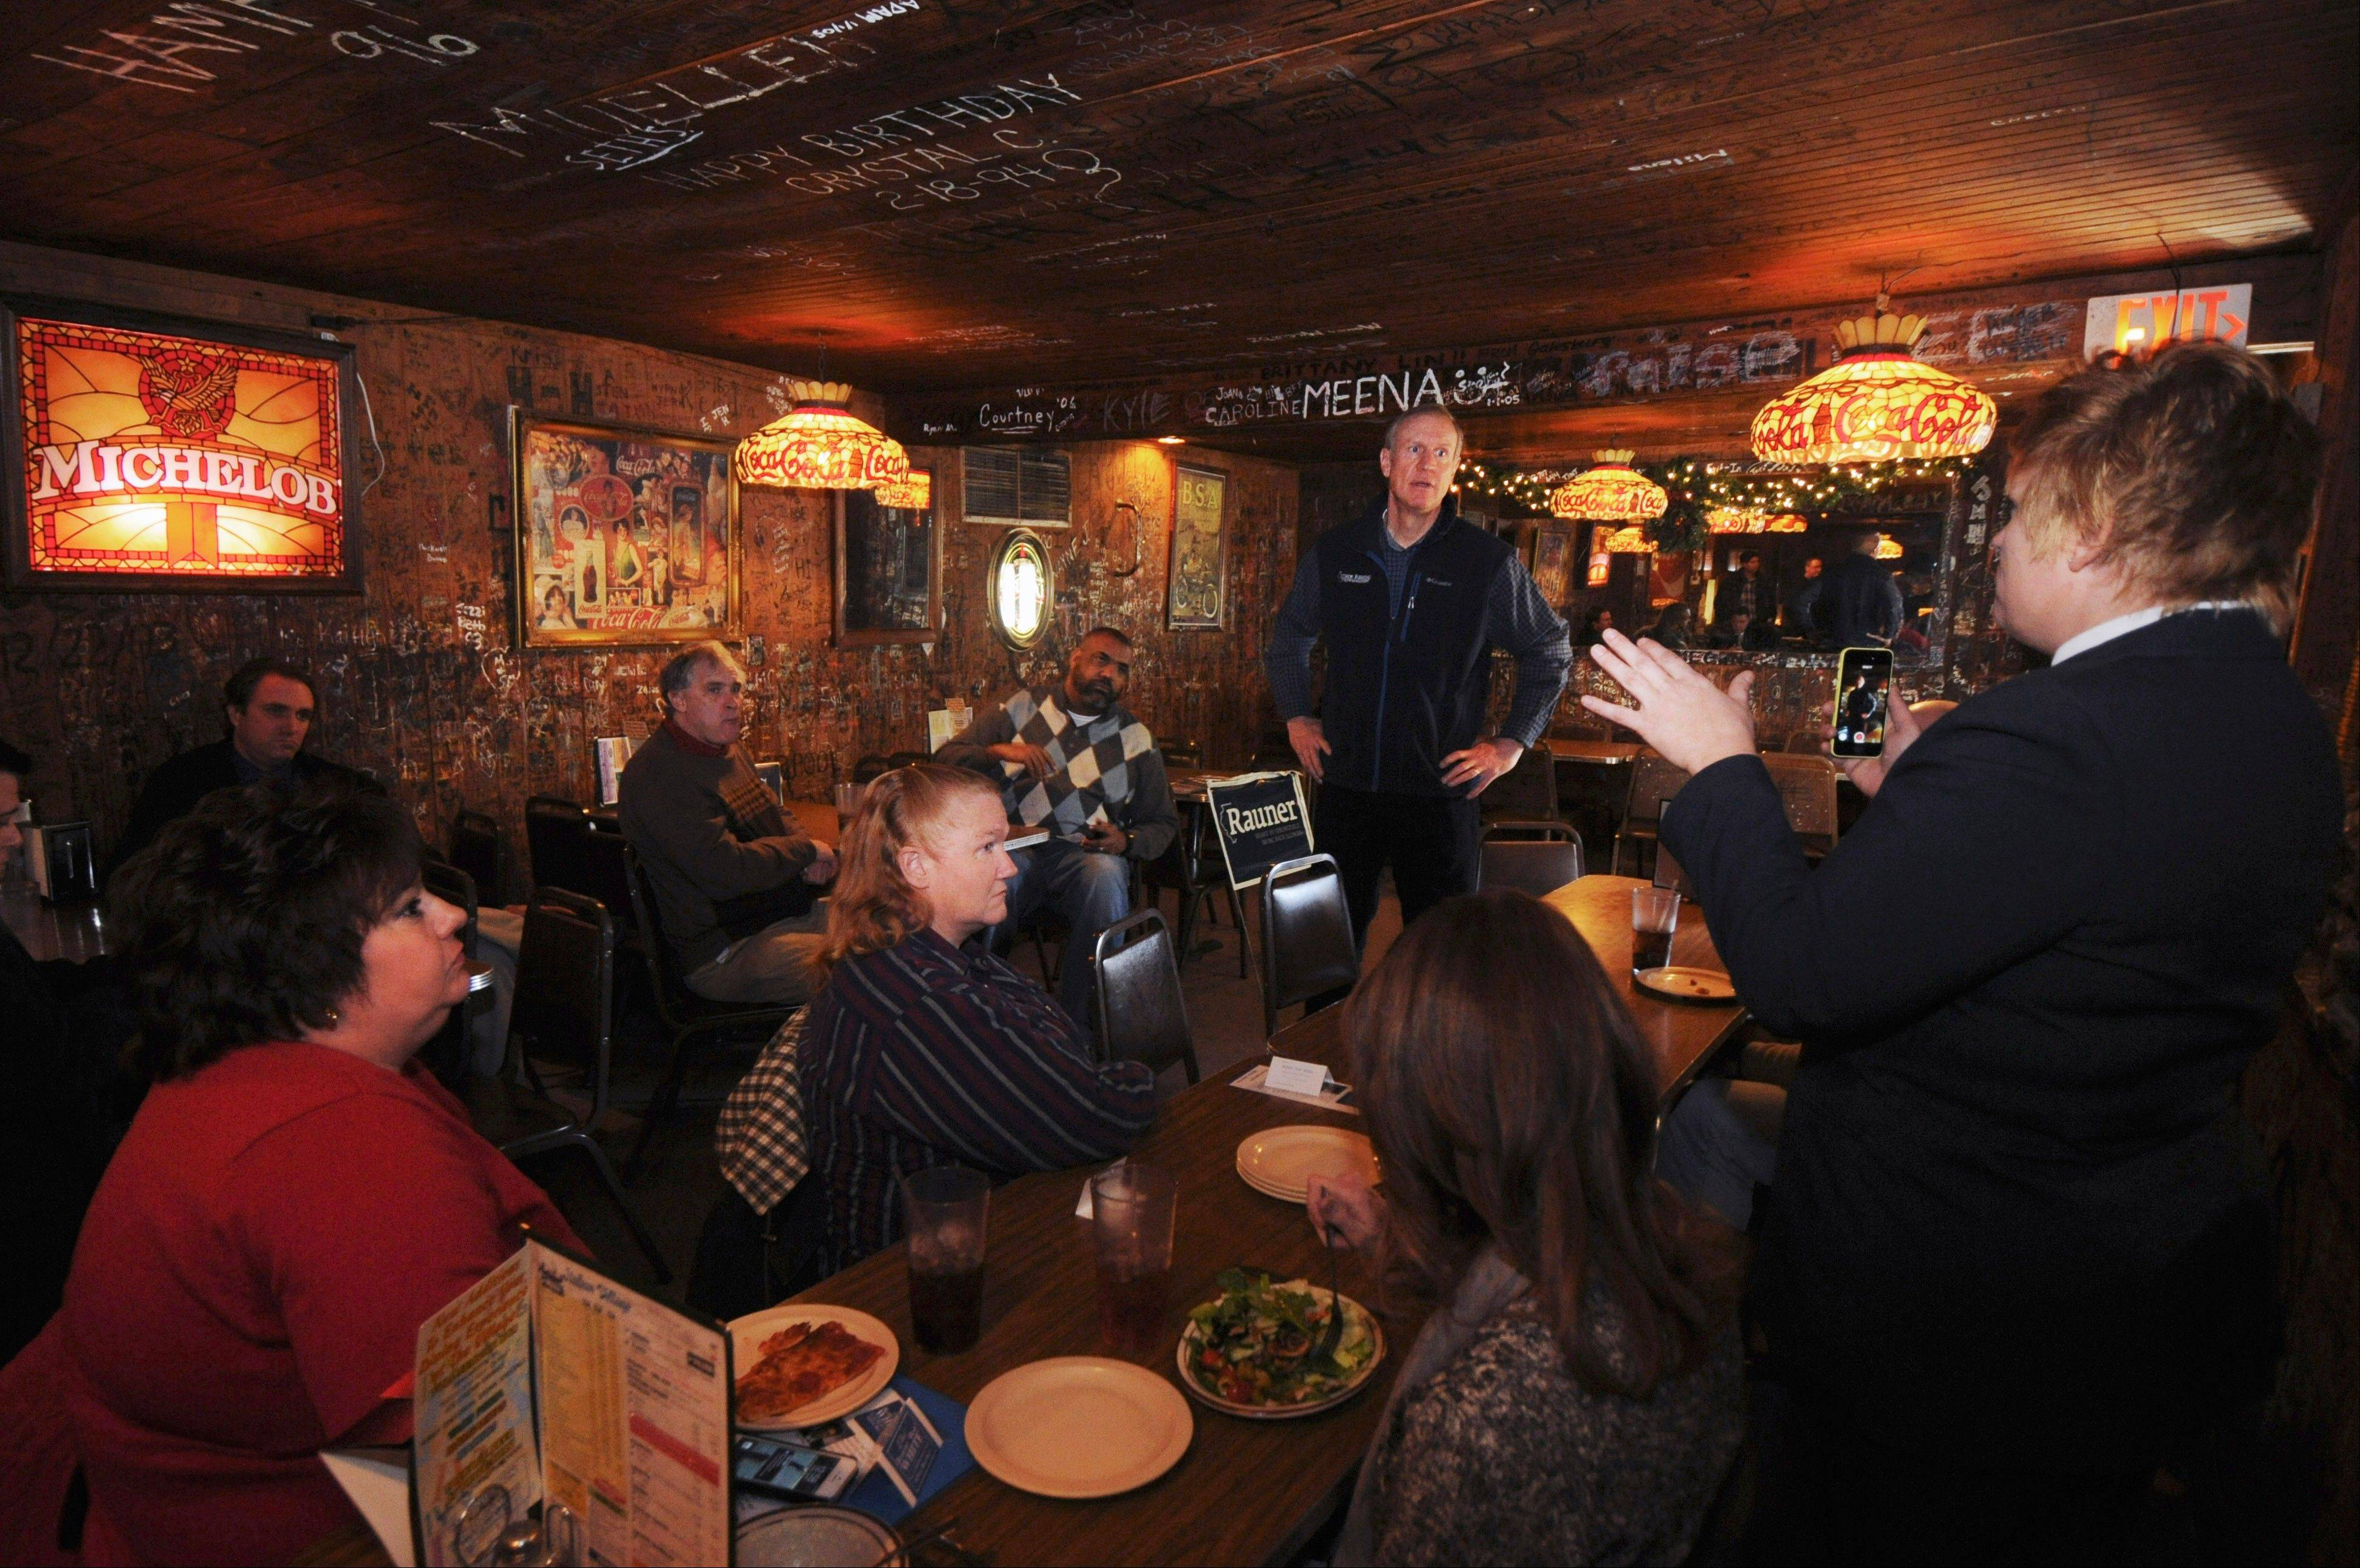 Republican gubernatorial candidate Bruce Rauner listens to comments from guests Tuesday at the Italian Village restaurant in Carbondale, Ill.